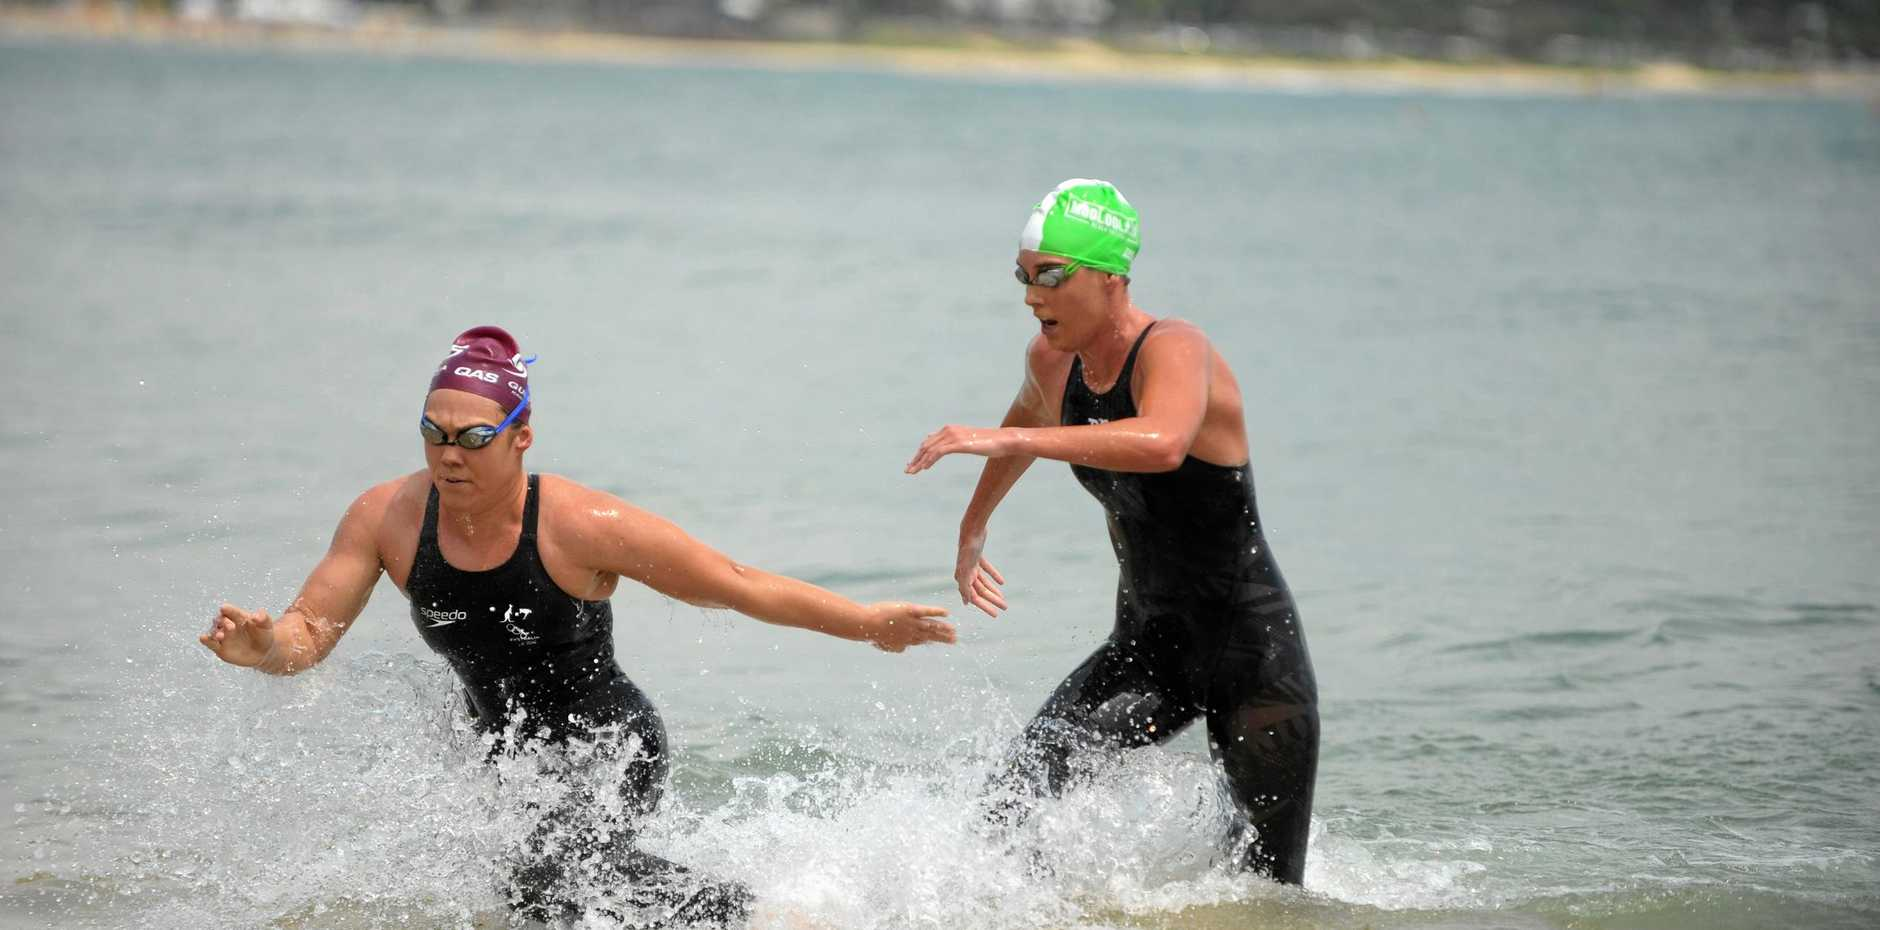 Chelsea Gubecka (left) stumbles after standing in the shallows, but still managed to get the win six seconds in front of Kareena Lee.